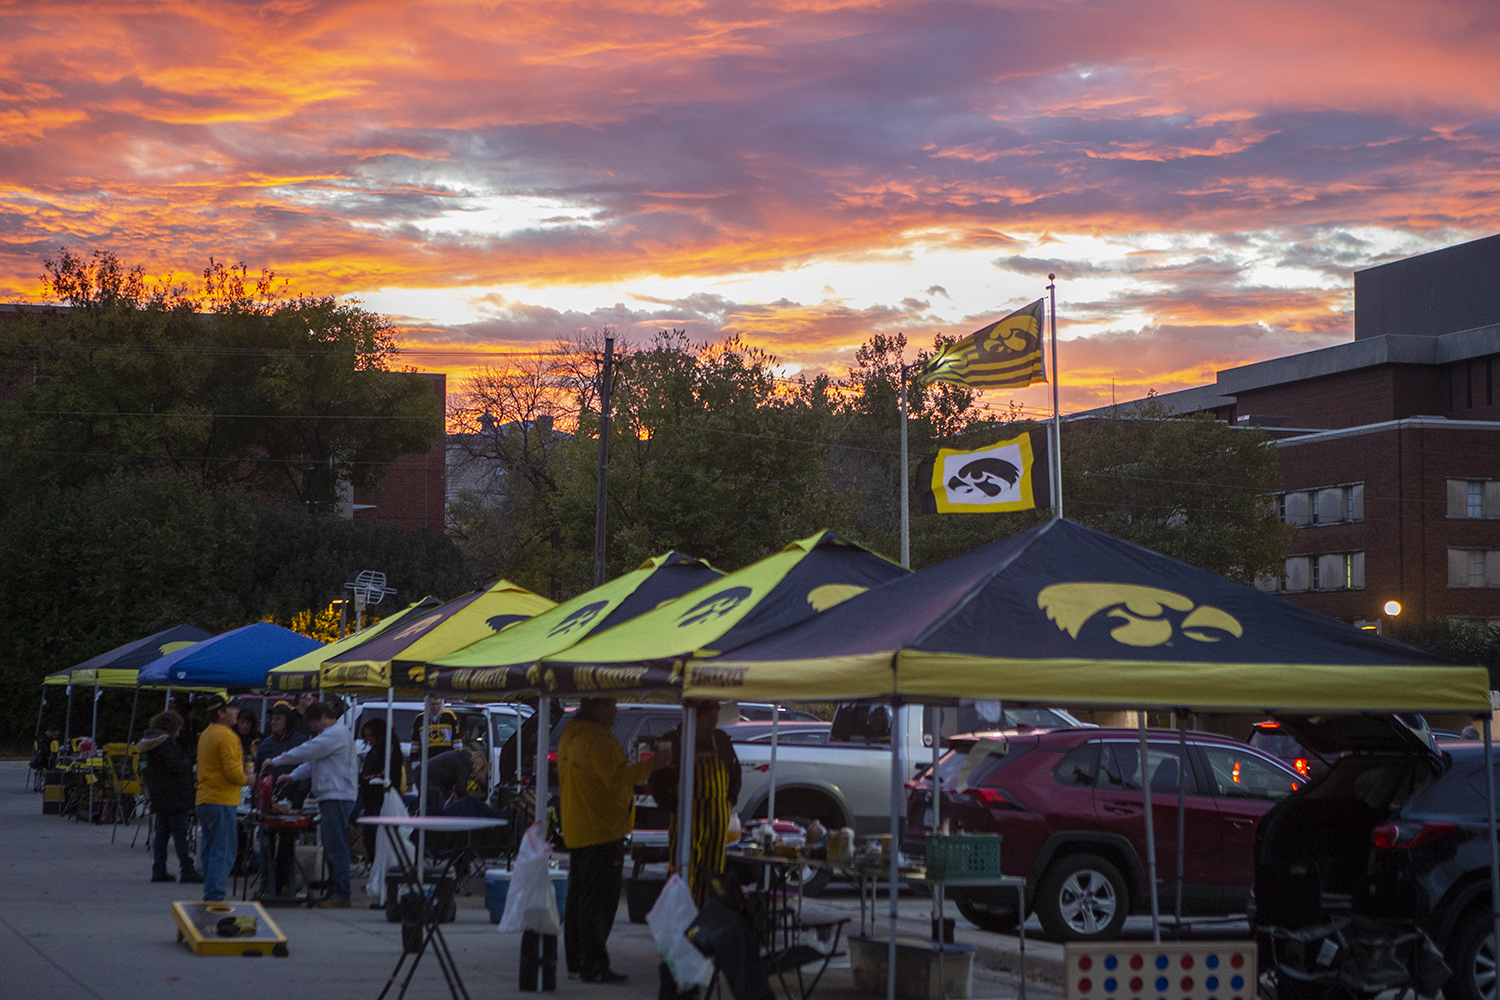 Hawkeye fans gather in the Main Library parking lot for tailgate festivities before the Iowa vs. Purdue game at sunrise on Saturday, October 19th, 2019. Iowa was ranking 23rd in the AP Collegiate Football Ranking poll.